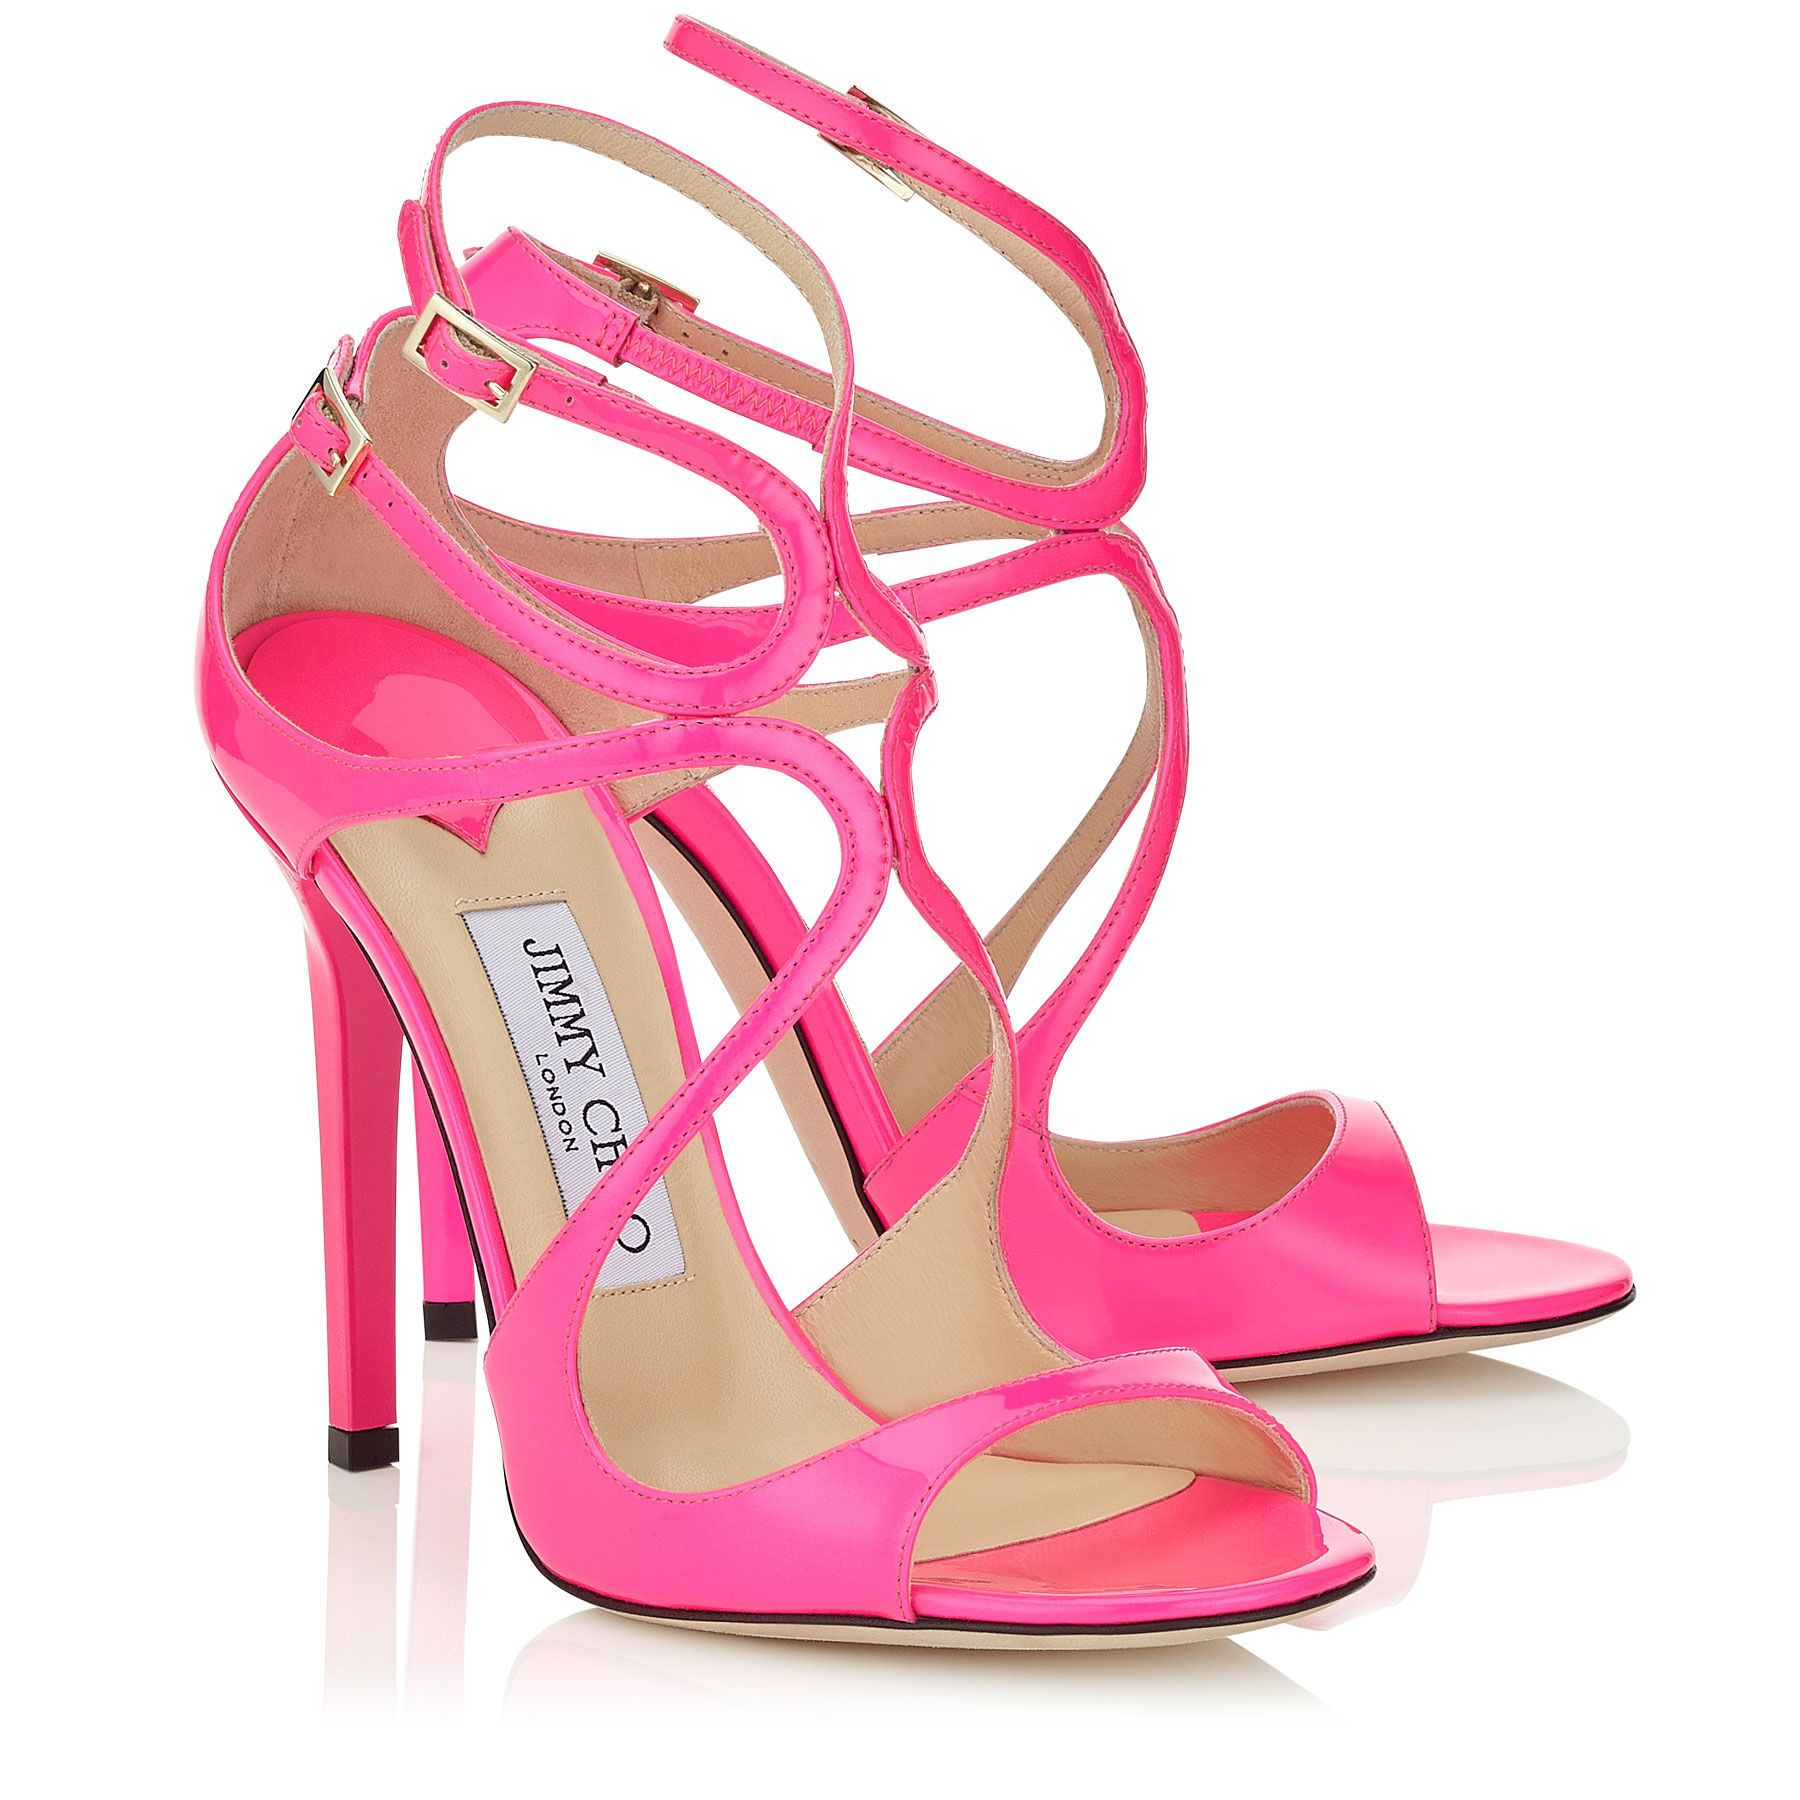 Hot Pink Jimmy Choo high heel sandals. Lance $850 | Hot Pink High ...